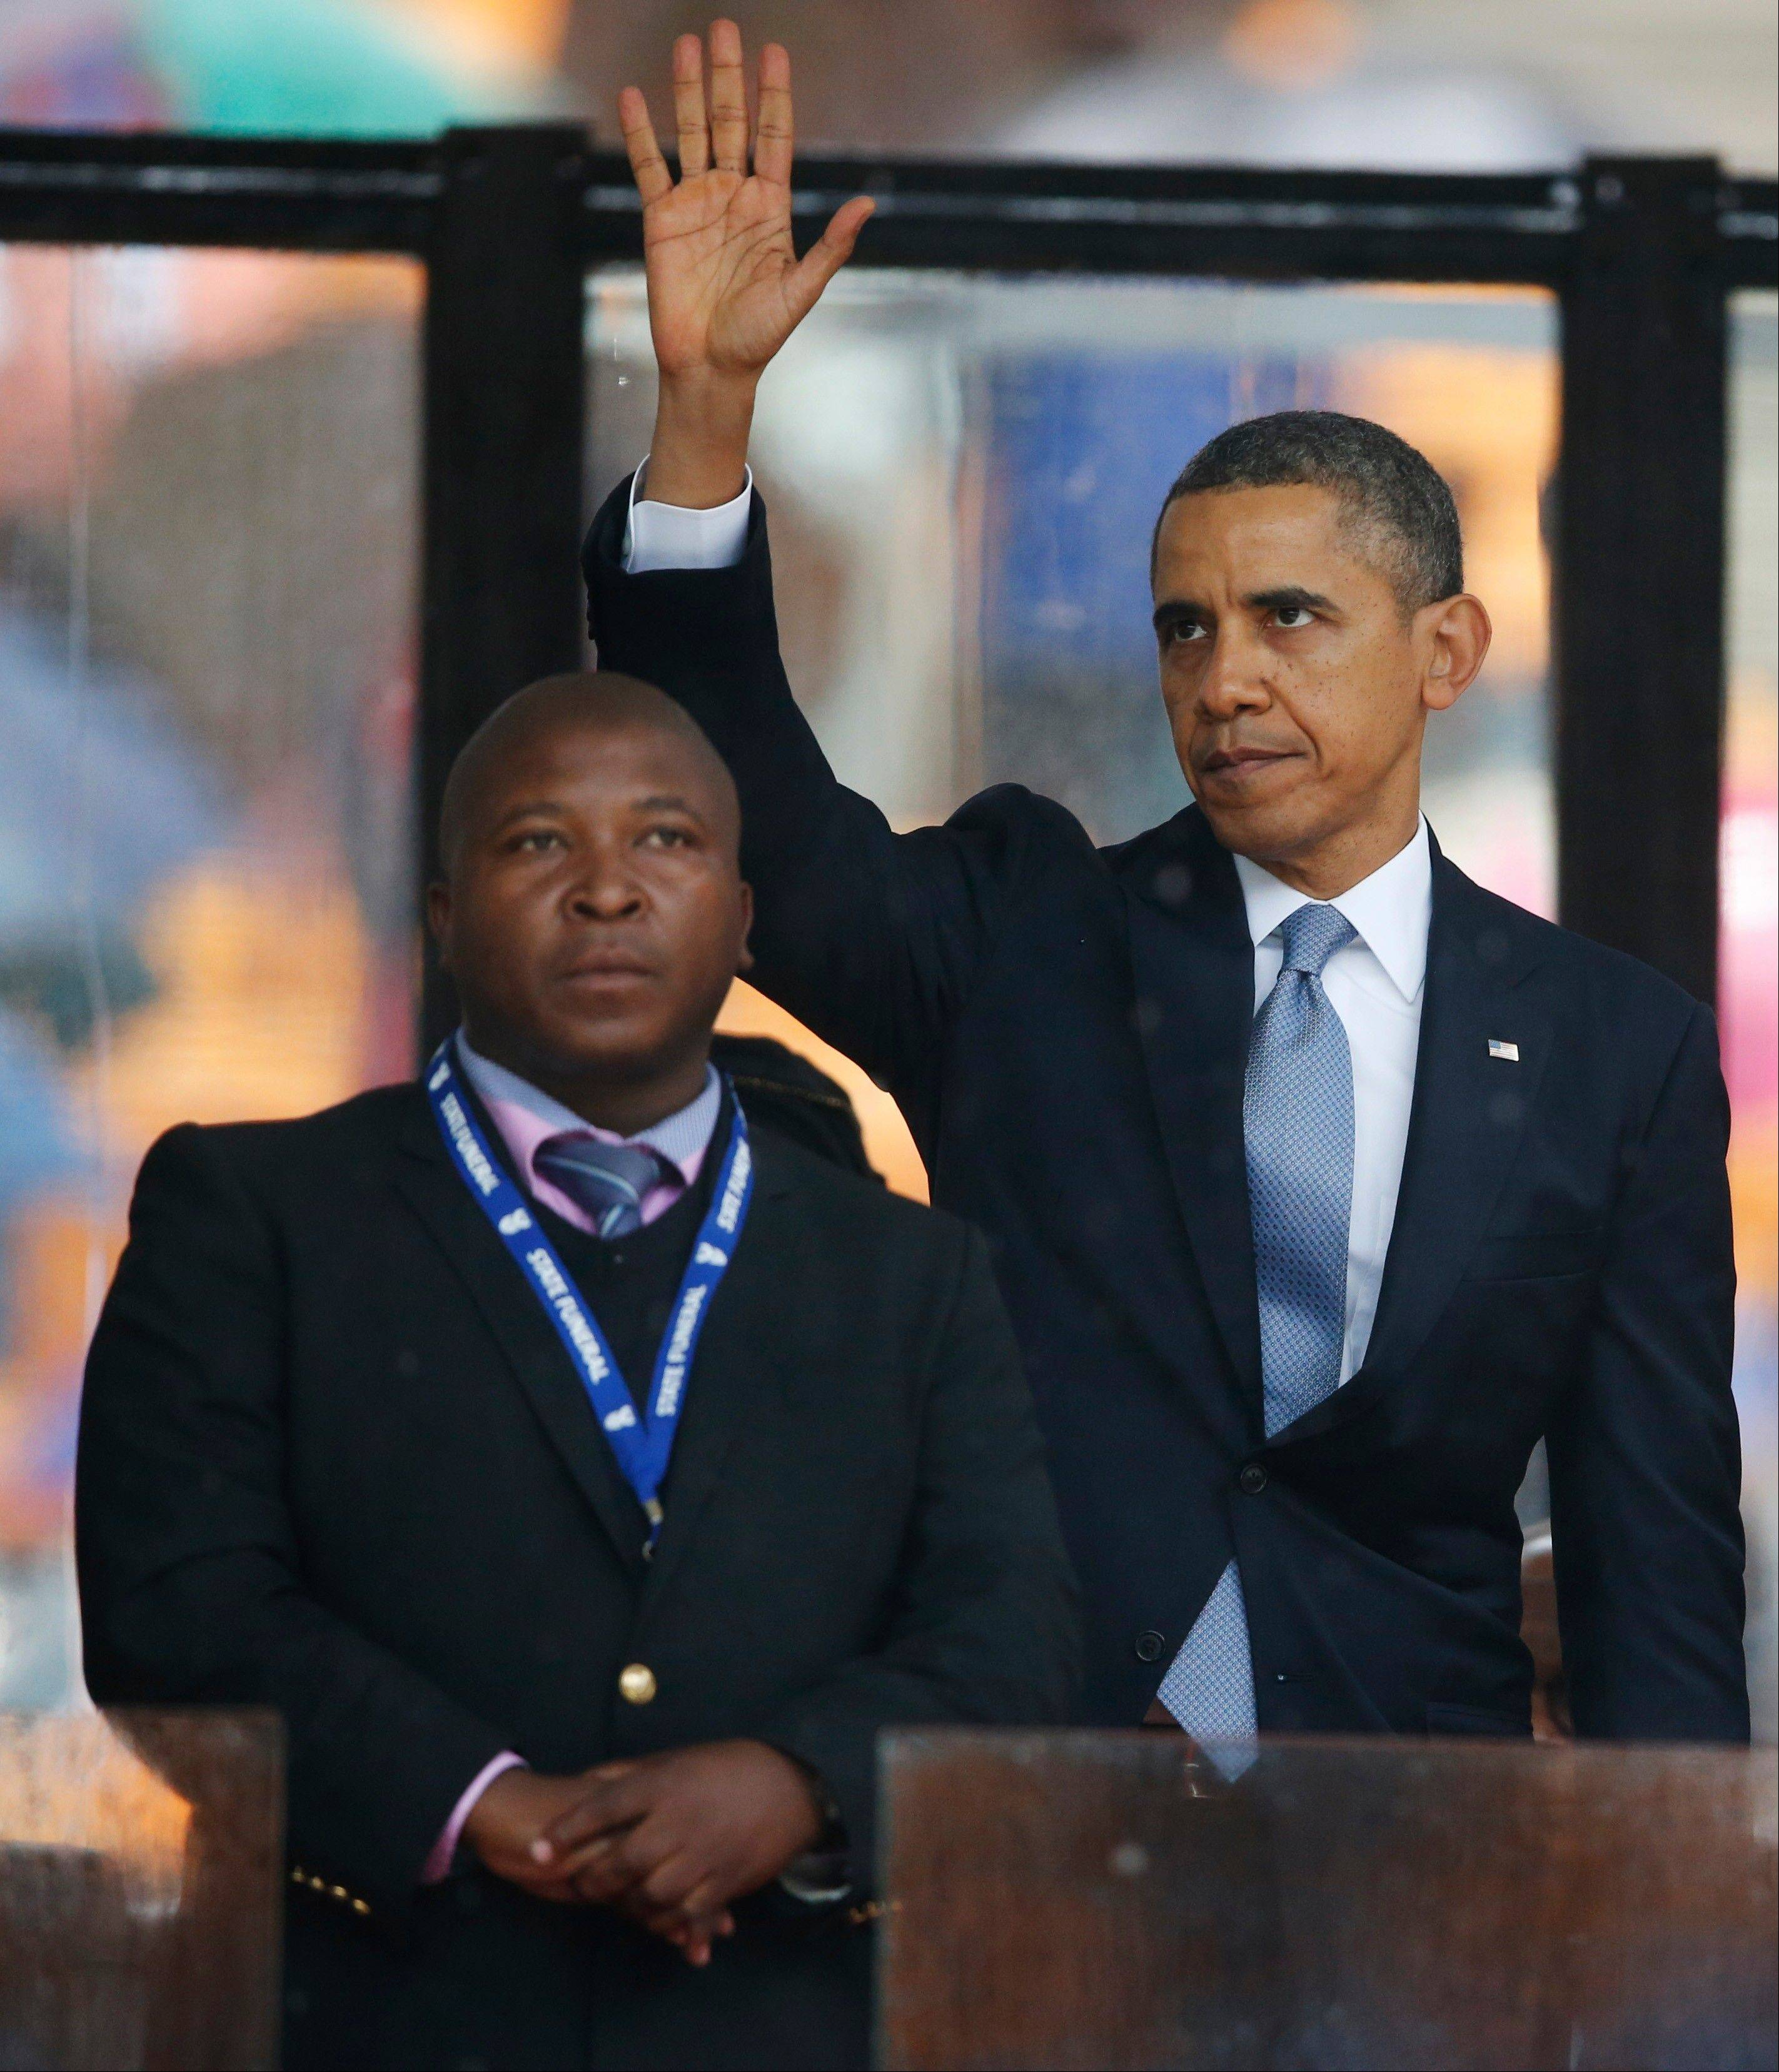 President Barack Obama stands next to the sign language interpreter after making his speech at the memorial service for former South African president Nelson Mandela on Tuesday. South Africa�s deaf federation said Wednesday the interpreter on stage for Mandela memorial was a �fake.�